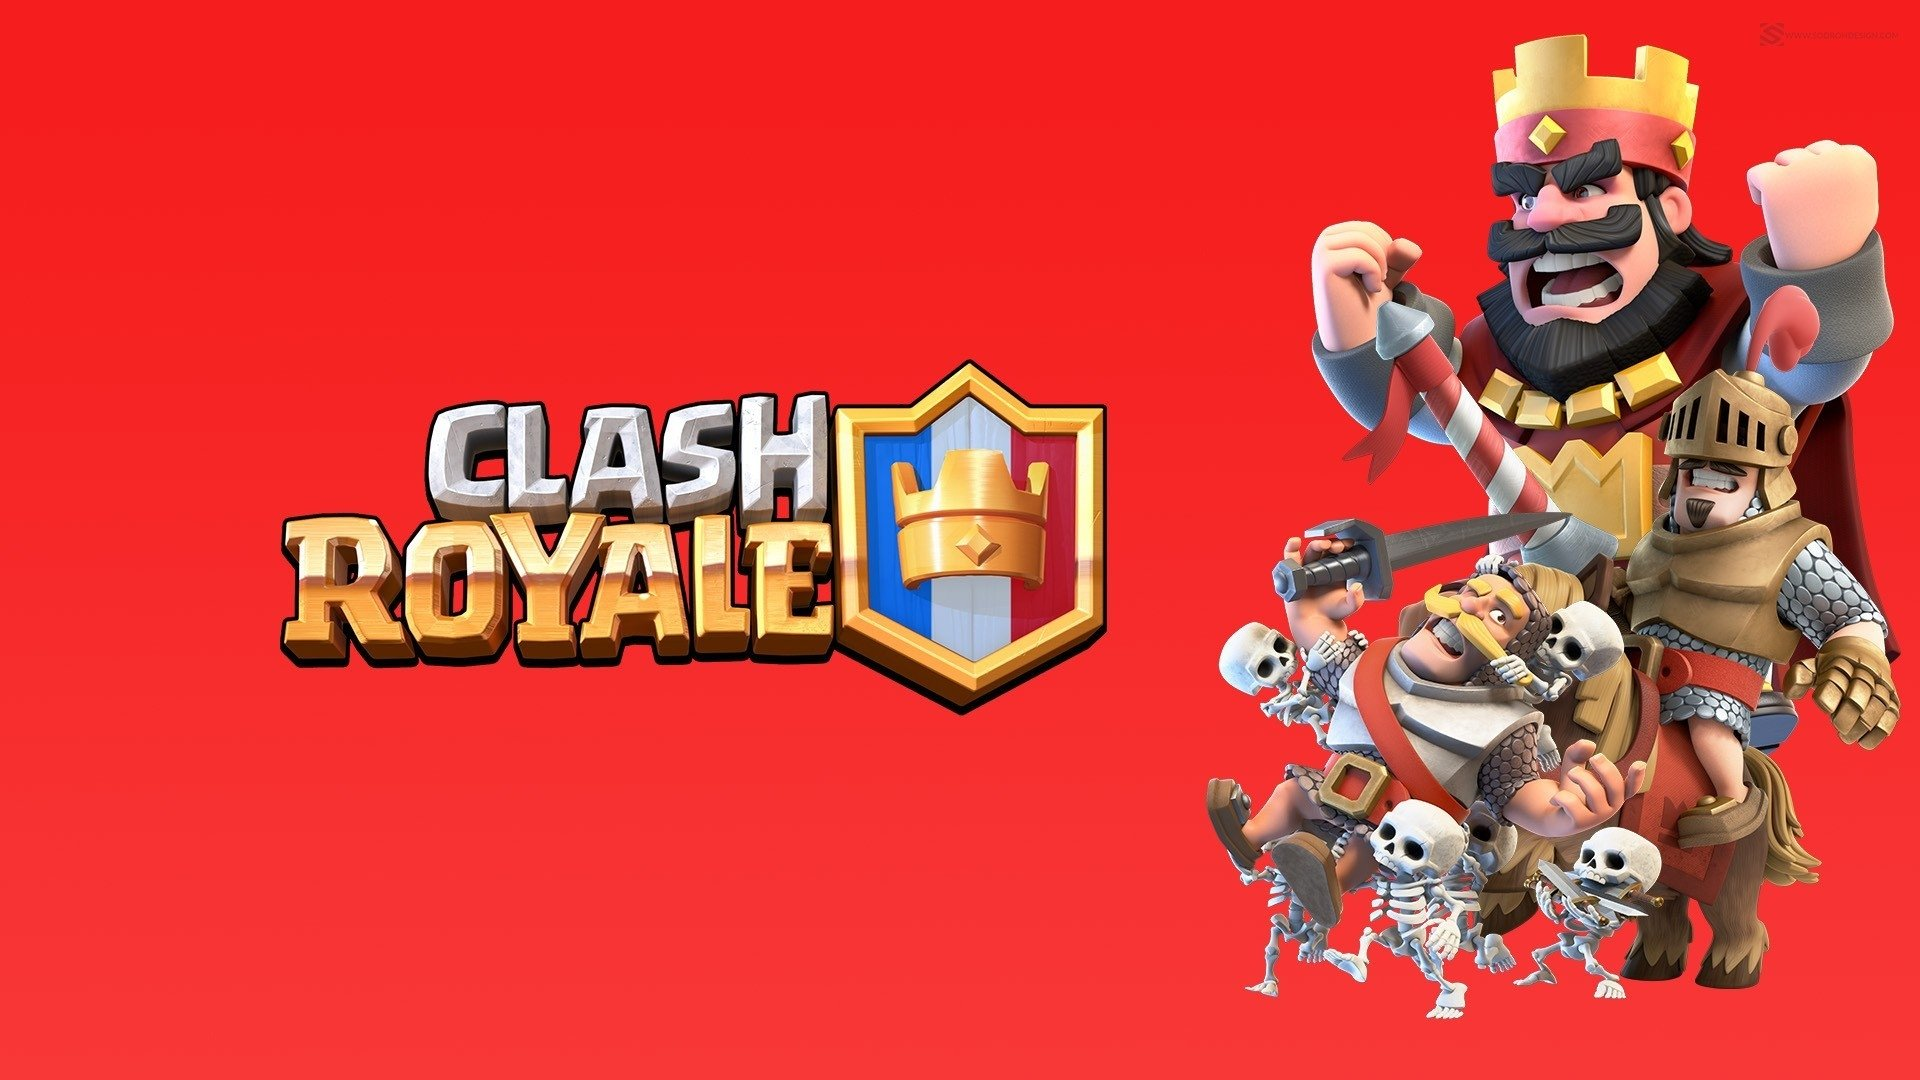 Clash Royale HD Wallpaper | Background Image | 1920x1080 ...